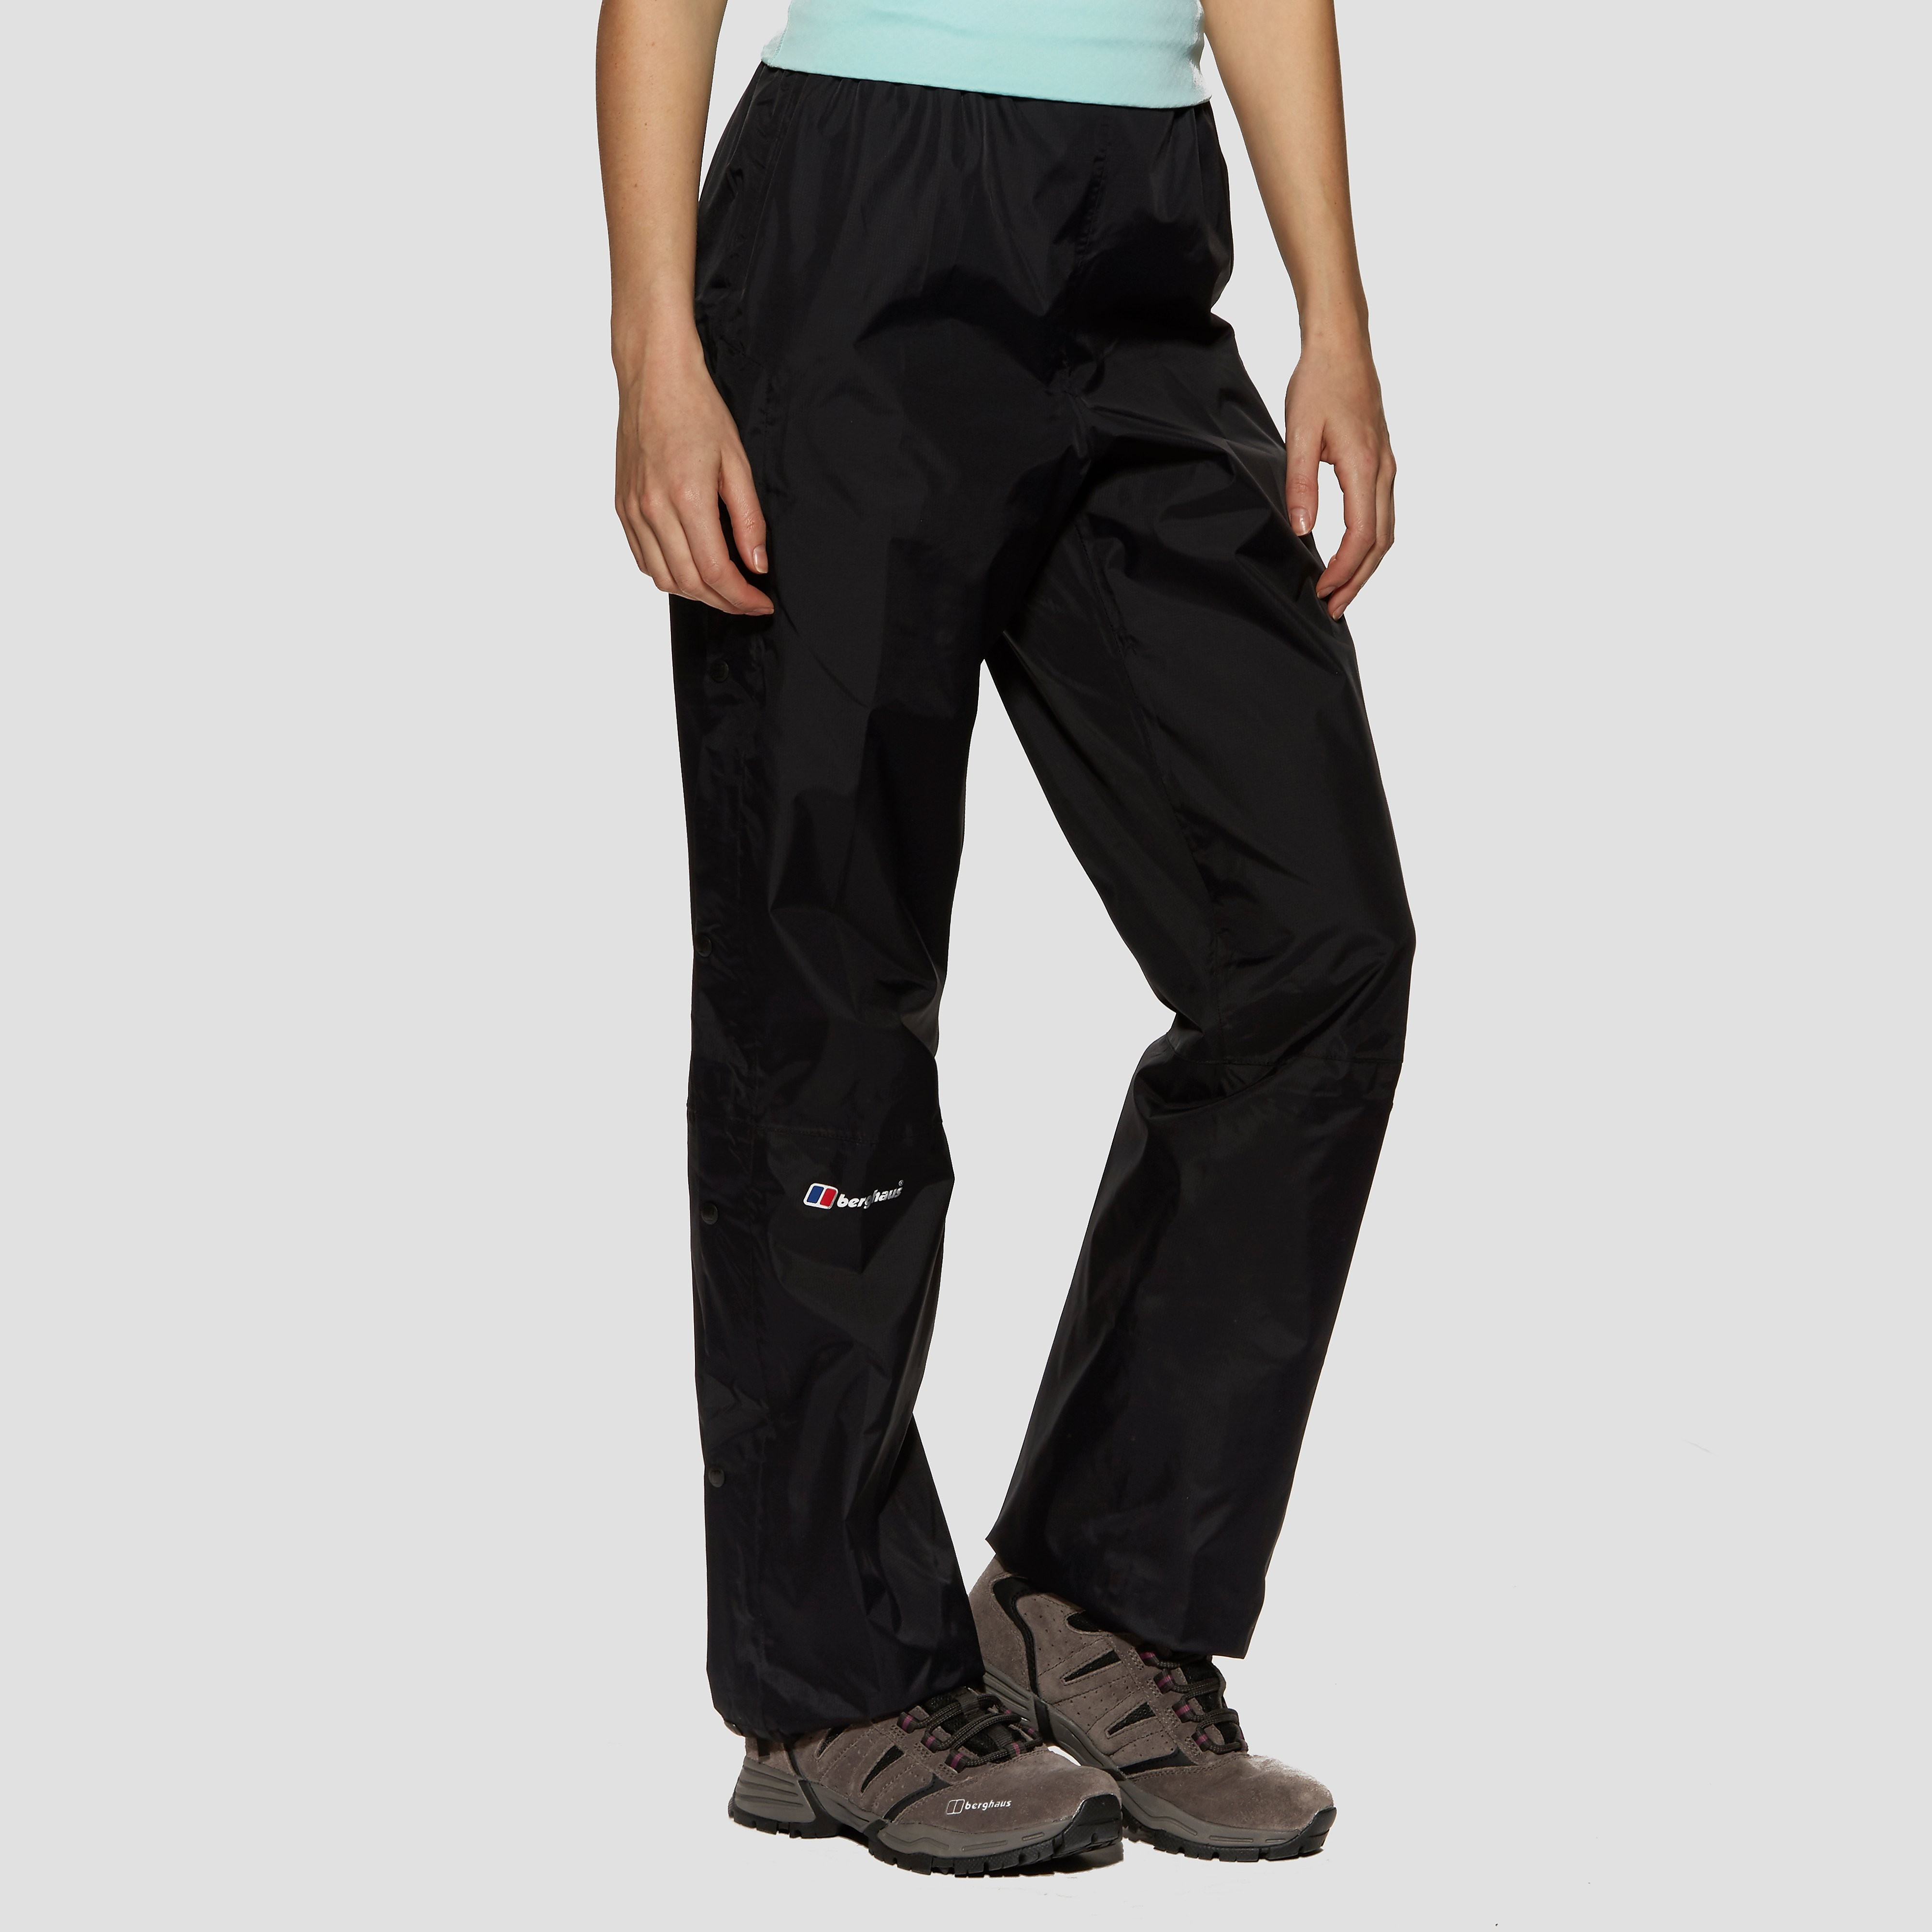 Berghaus Deluge Waterproof Women's Pants